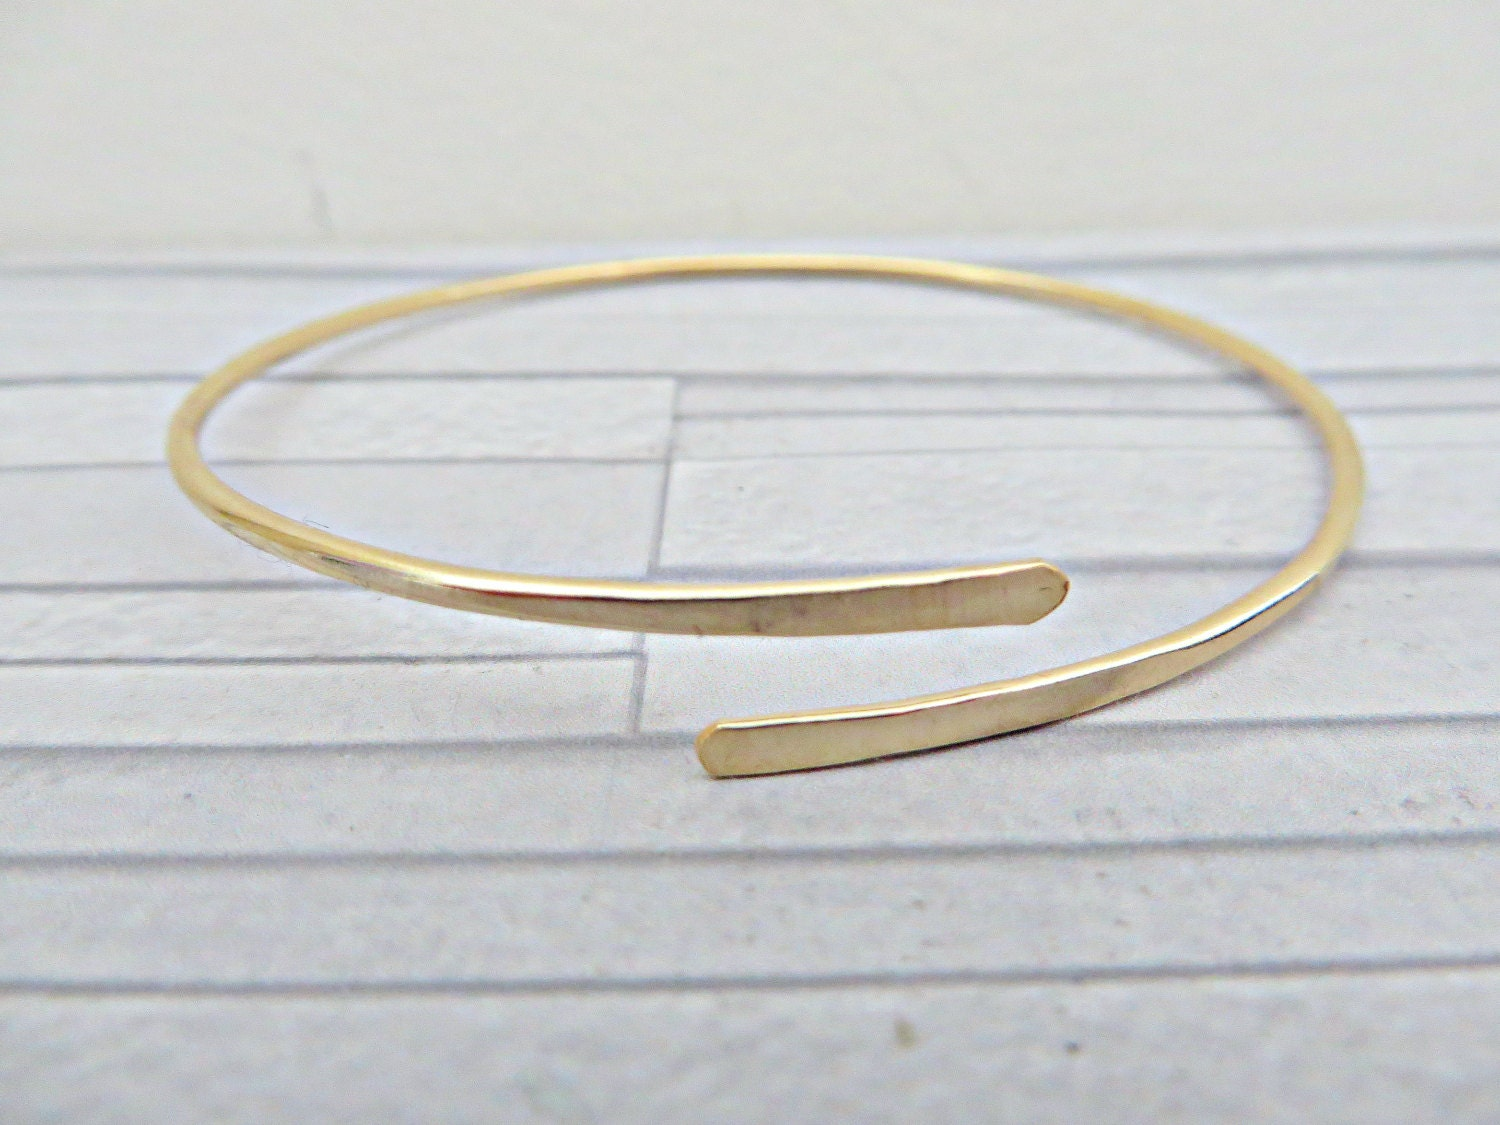 bangle asp p solid bracelet gold spanner cast plain grams hallmarked heavy bangles in yellow